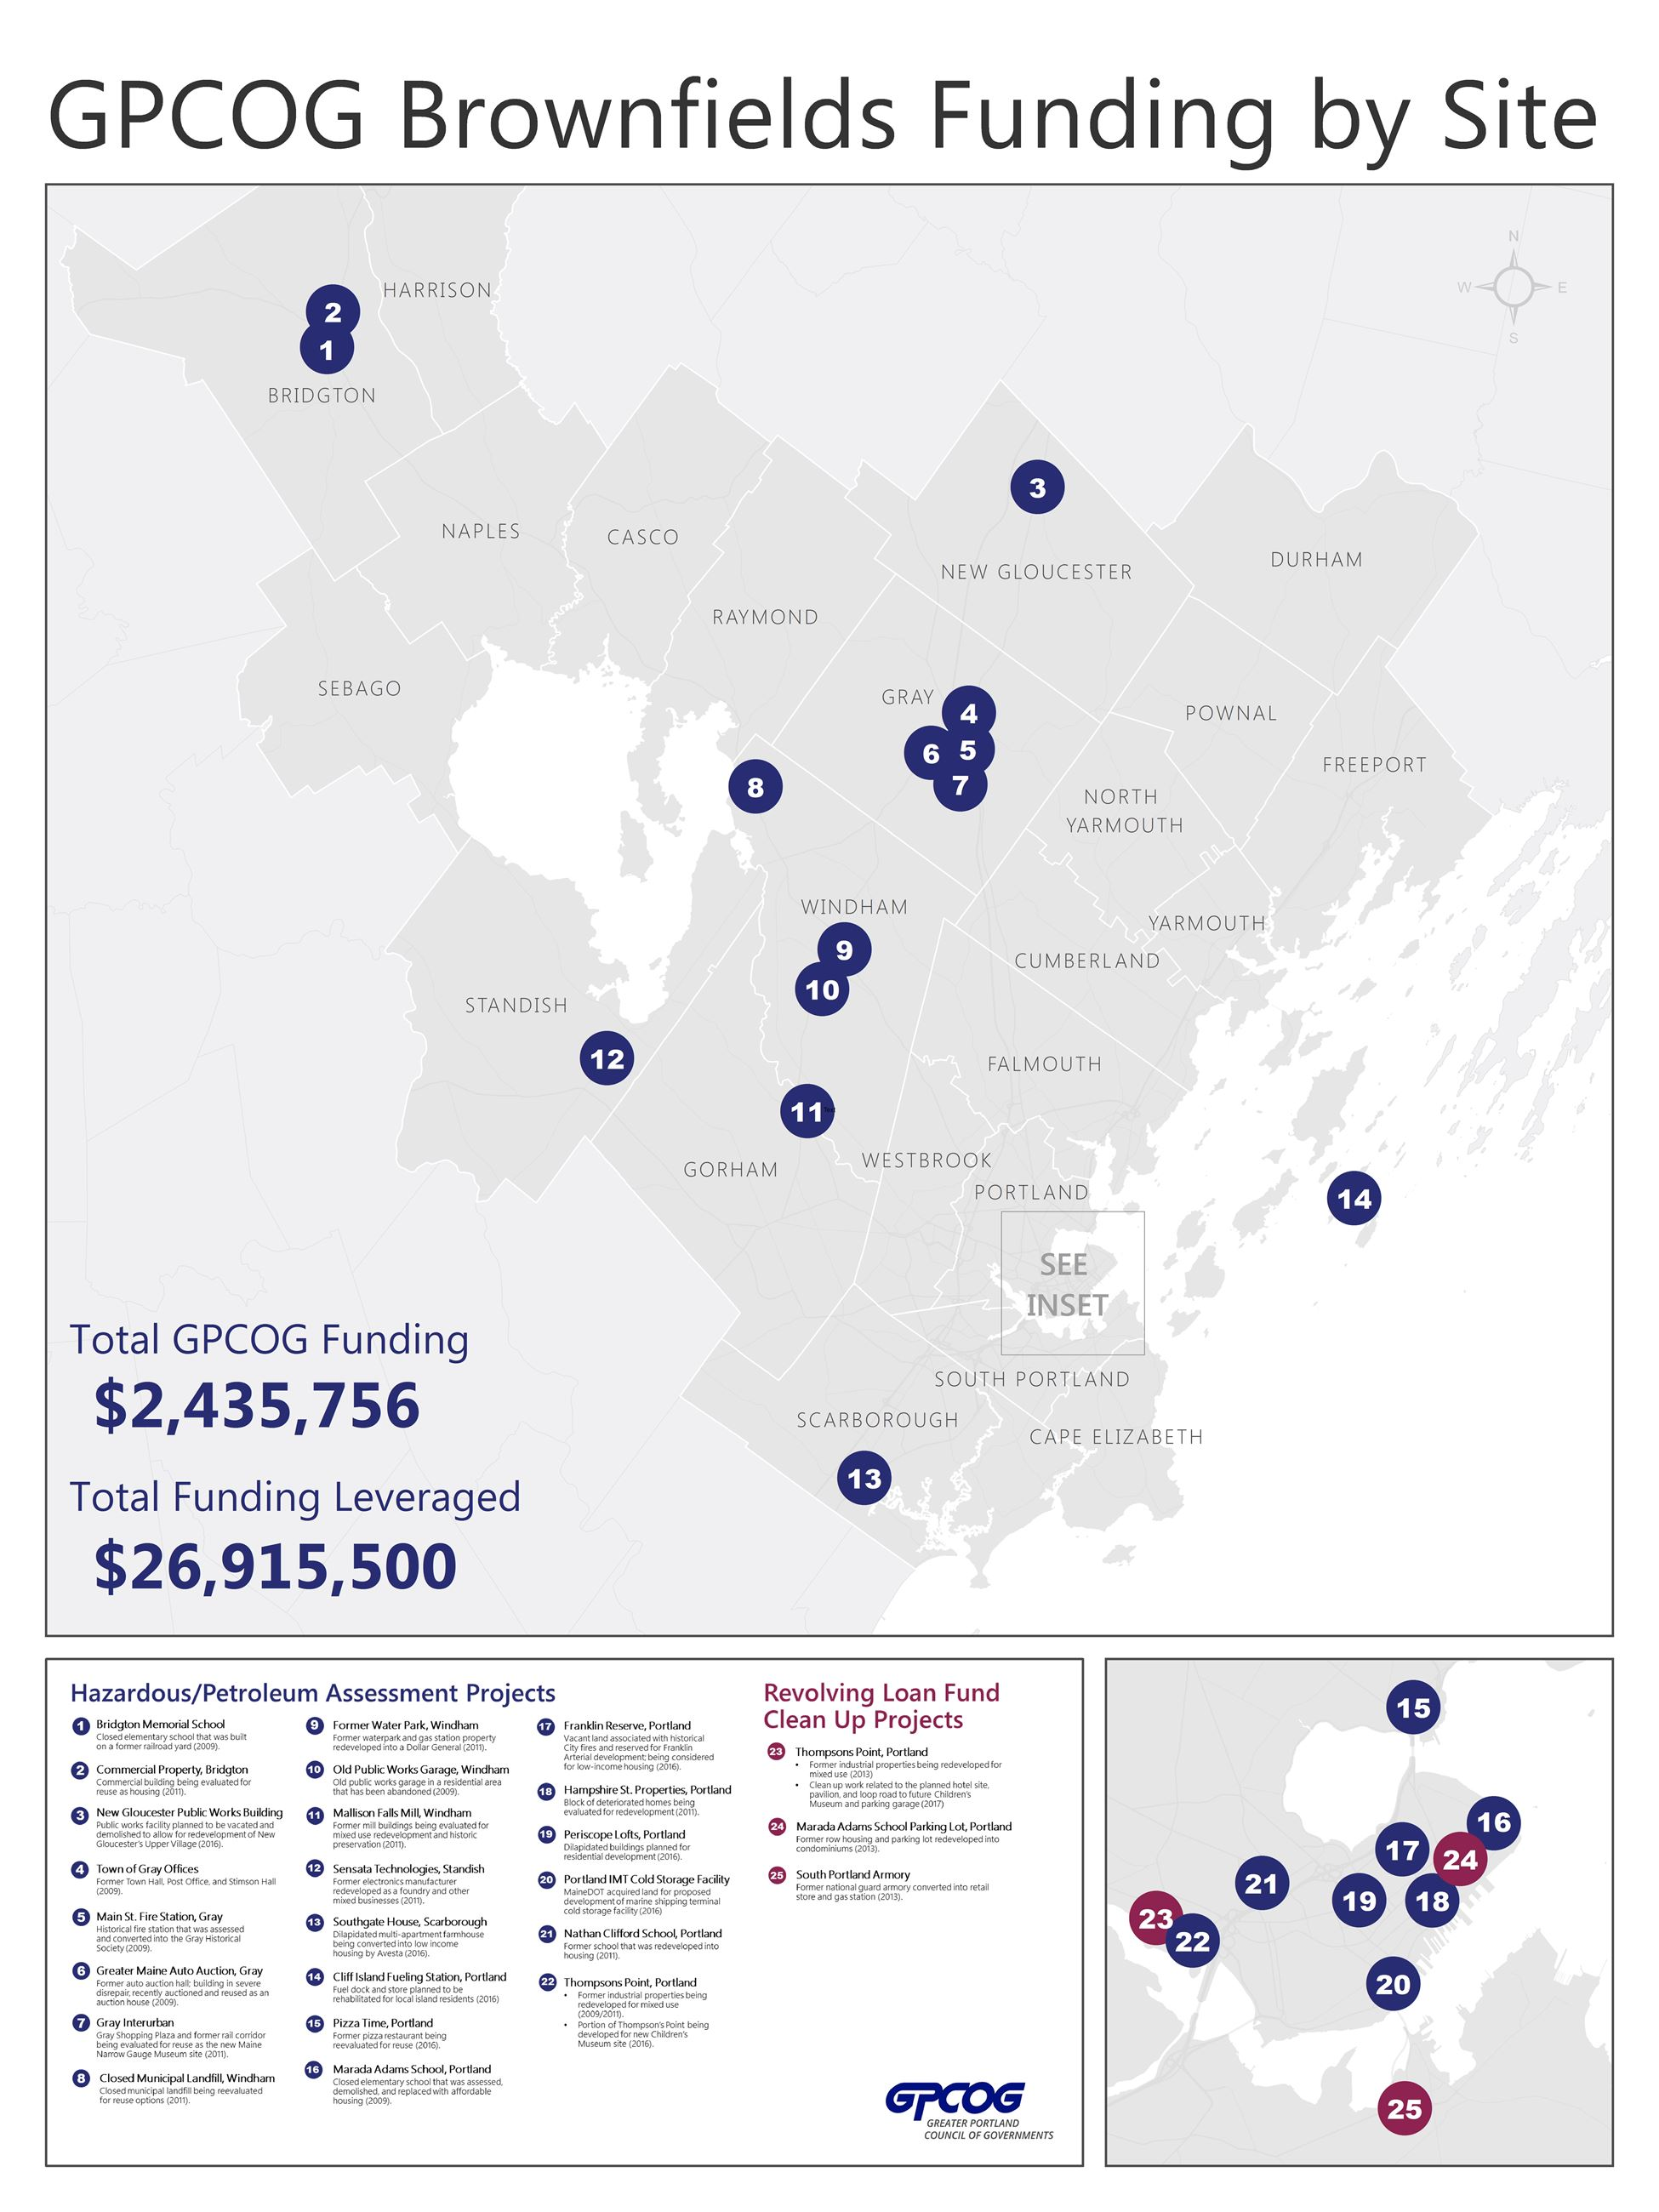 Funding history of Brownfields projects in the Greater Portland area